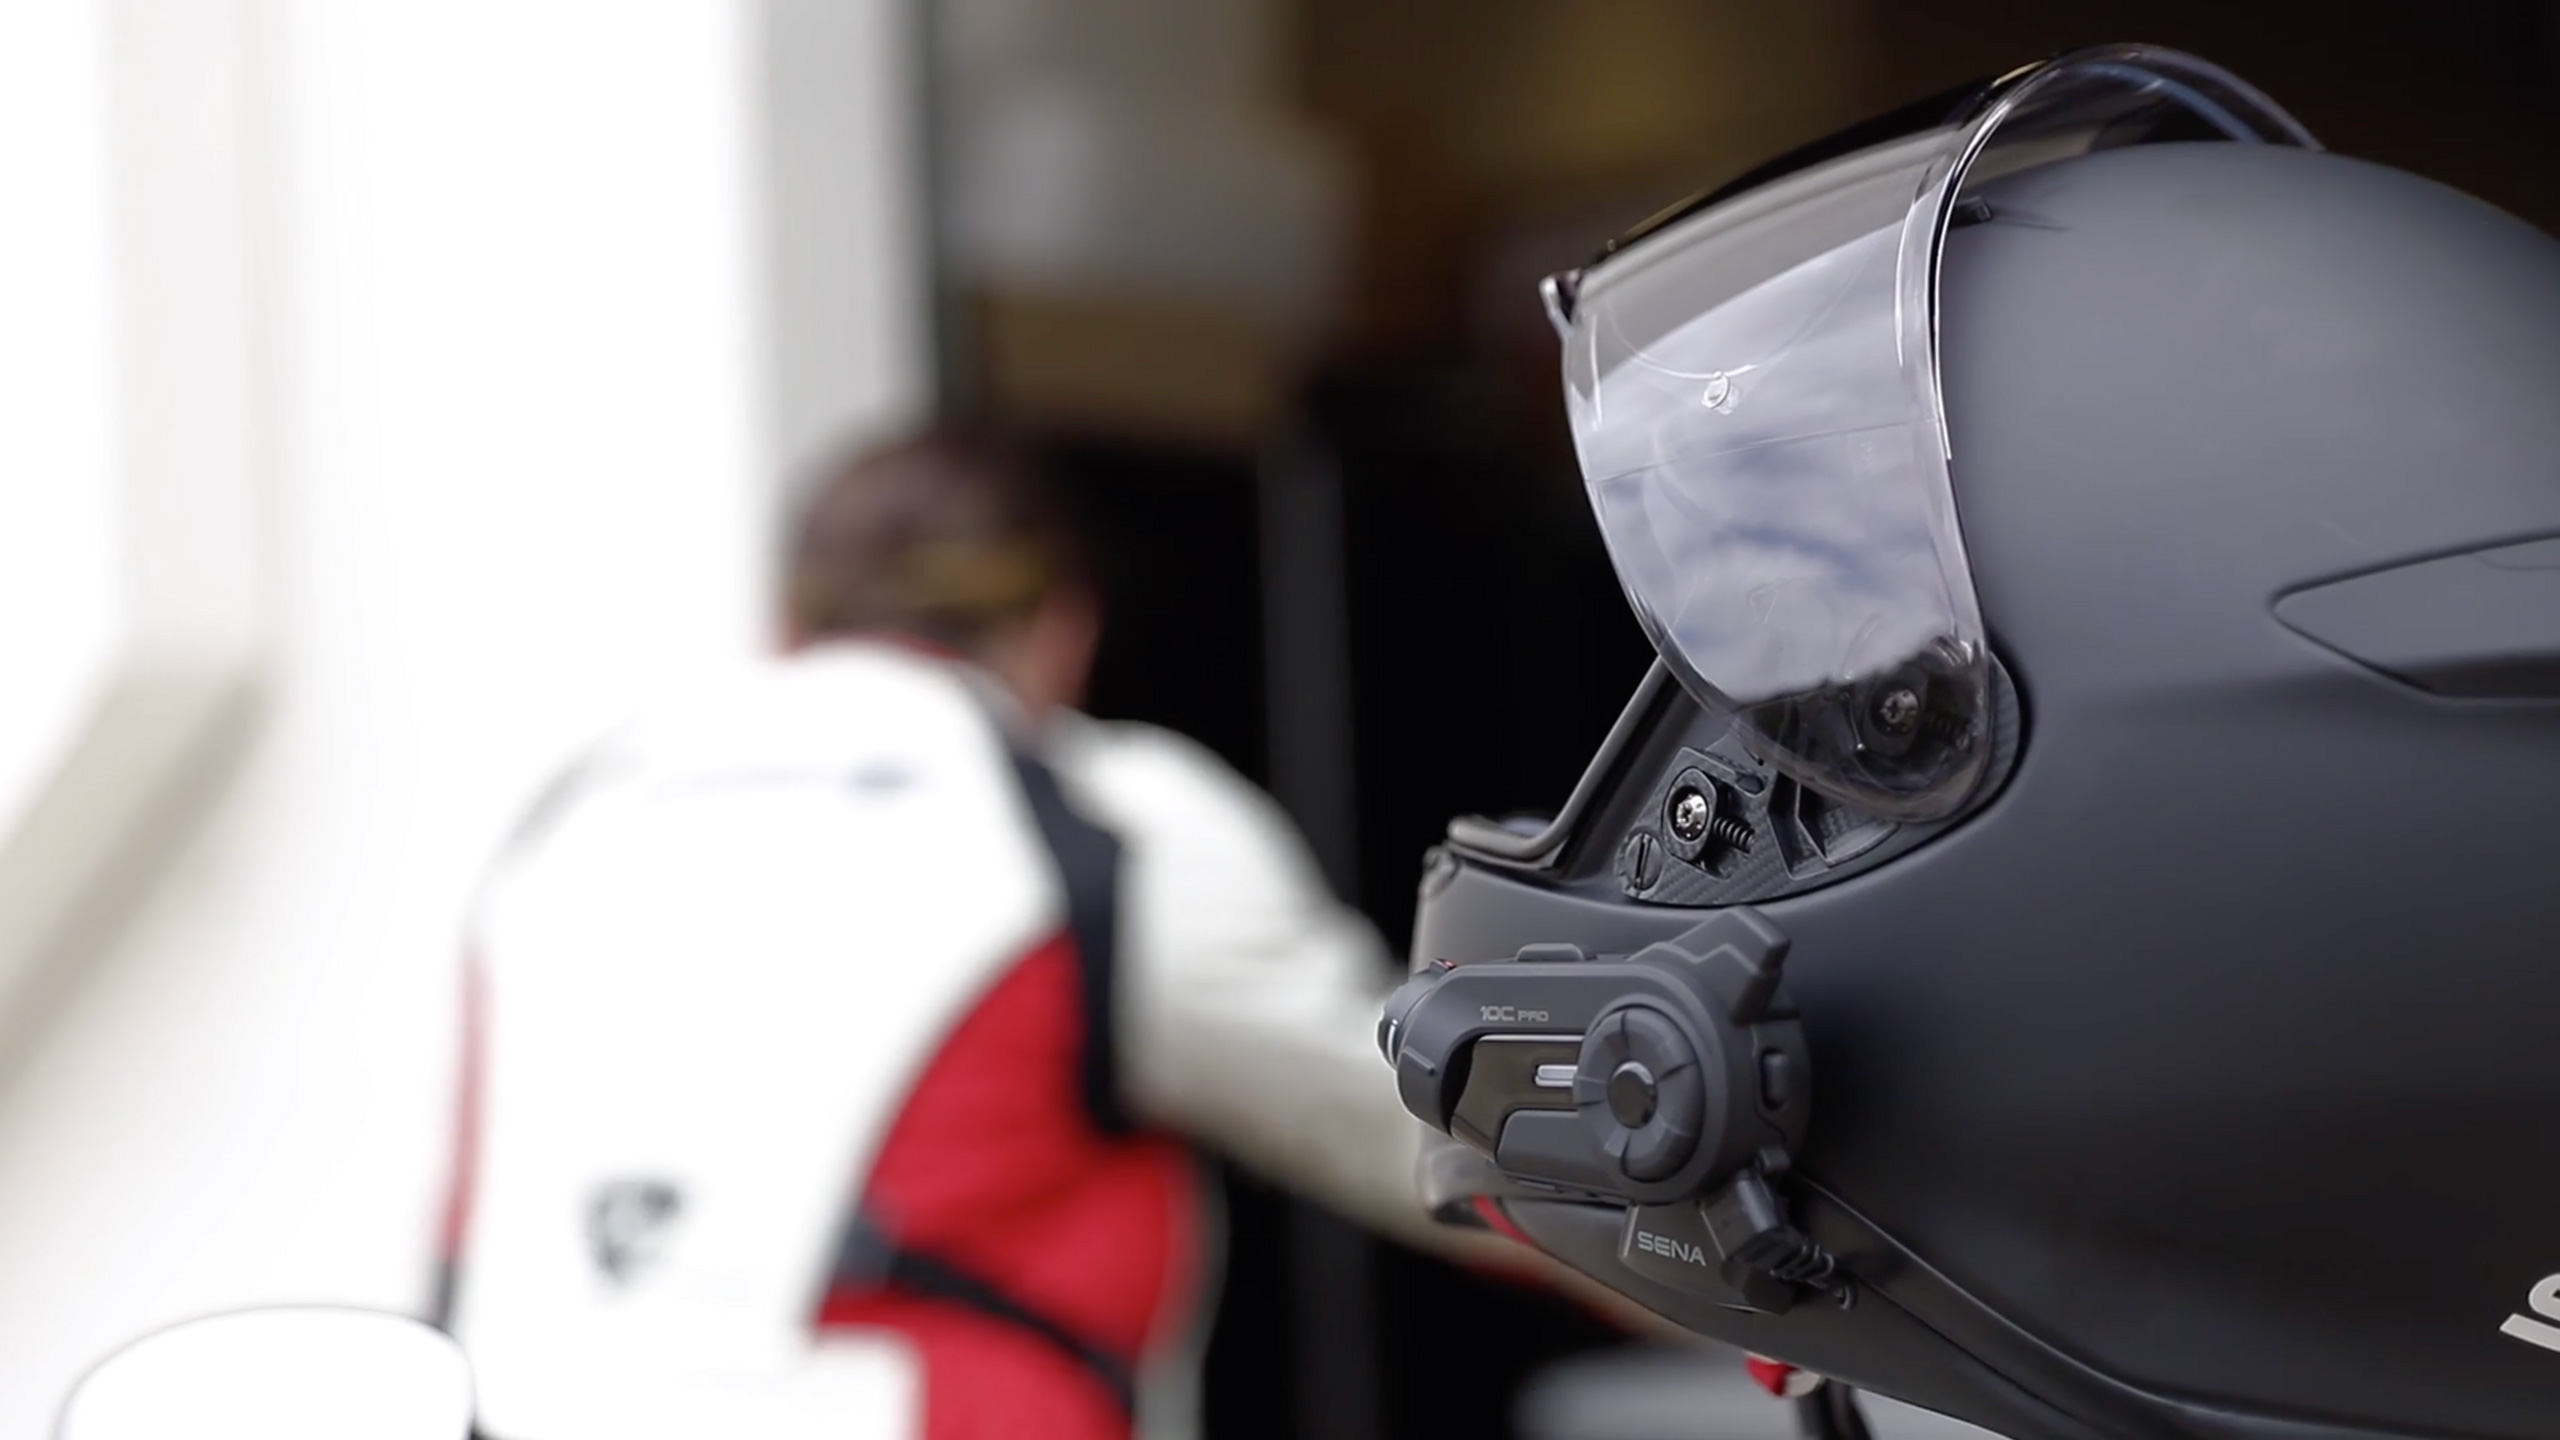 10C Pro attached to a helmet